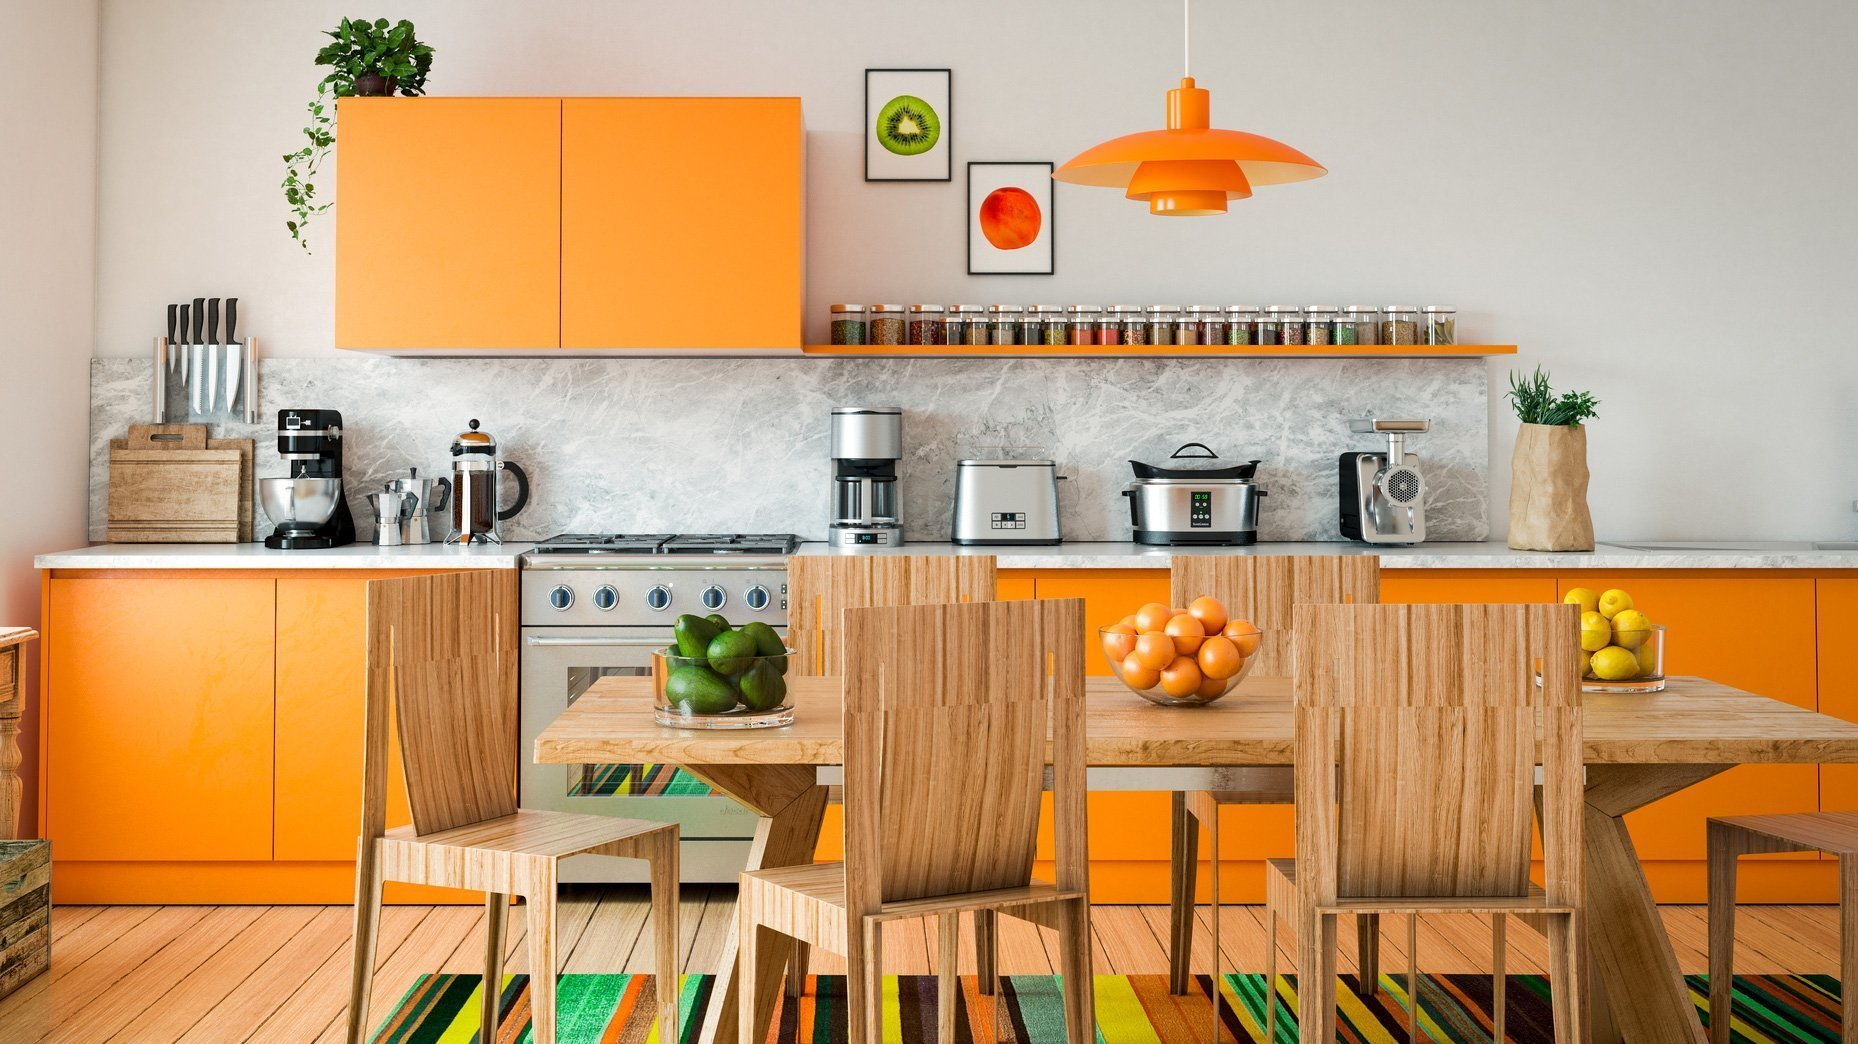 How To Choose The Best Kitchen Cabinets And Countertops in 2020 Cabinet Project - 4